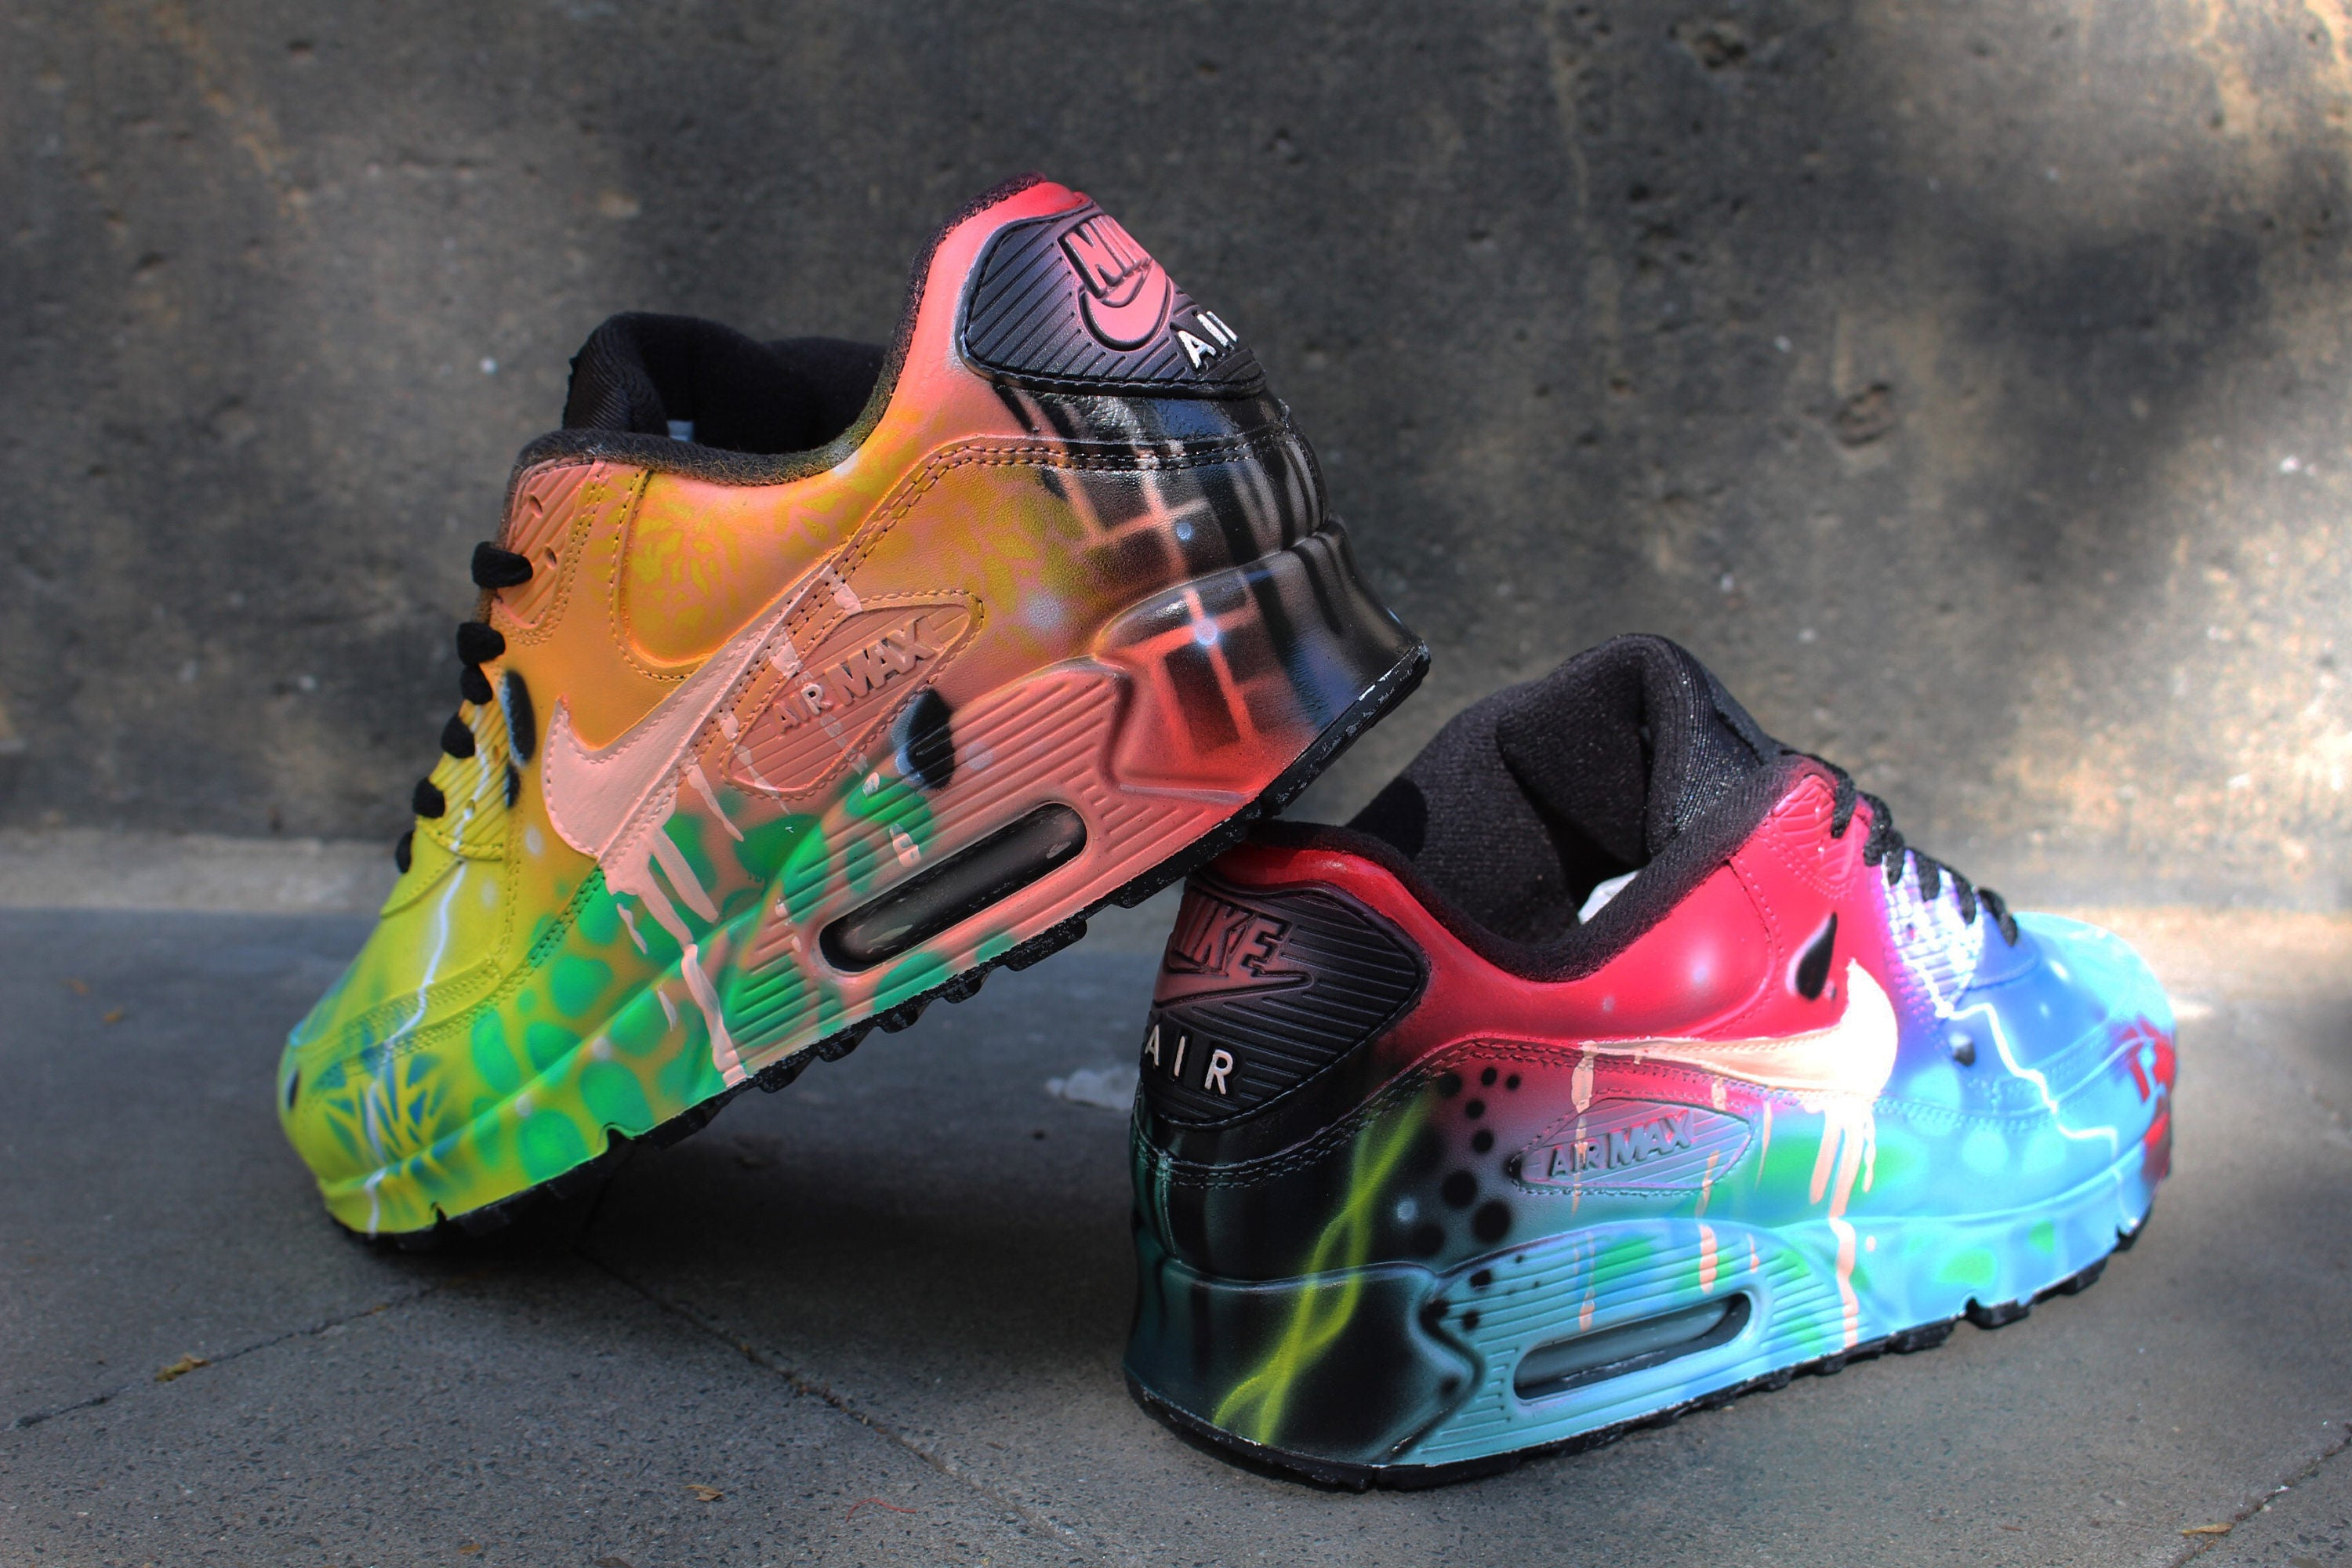 official photos 6f998 aa49d Custom Airbrush Painted Nike Air Max 90 Crazy Funky Colours   Etsy